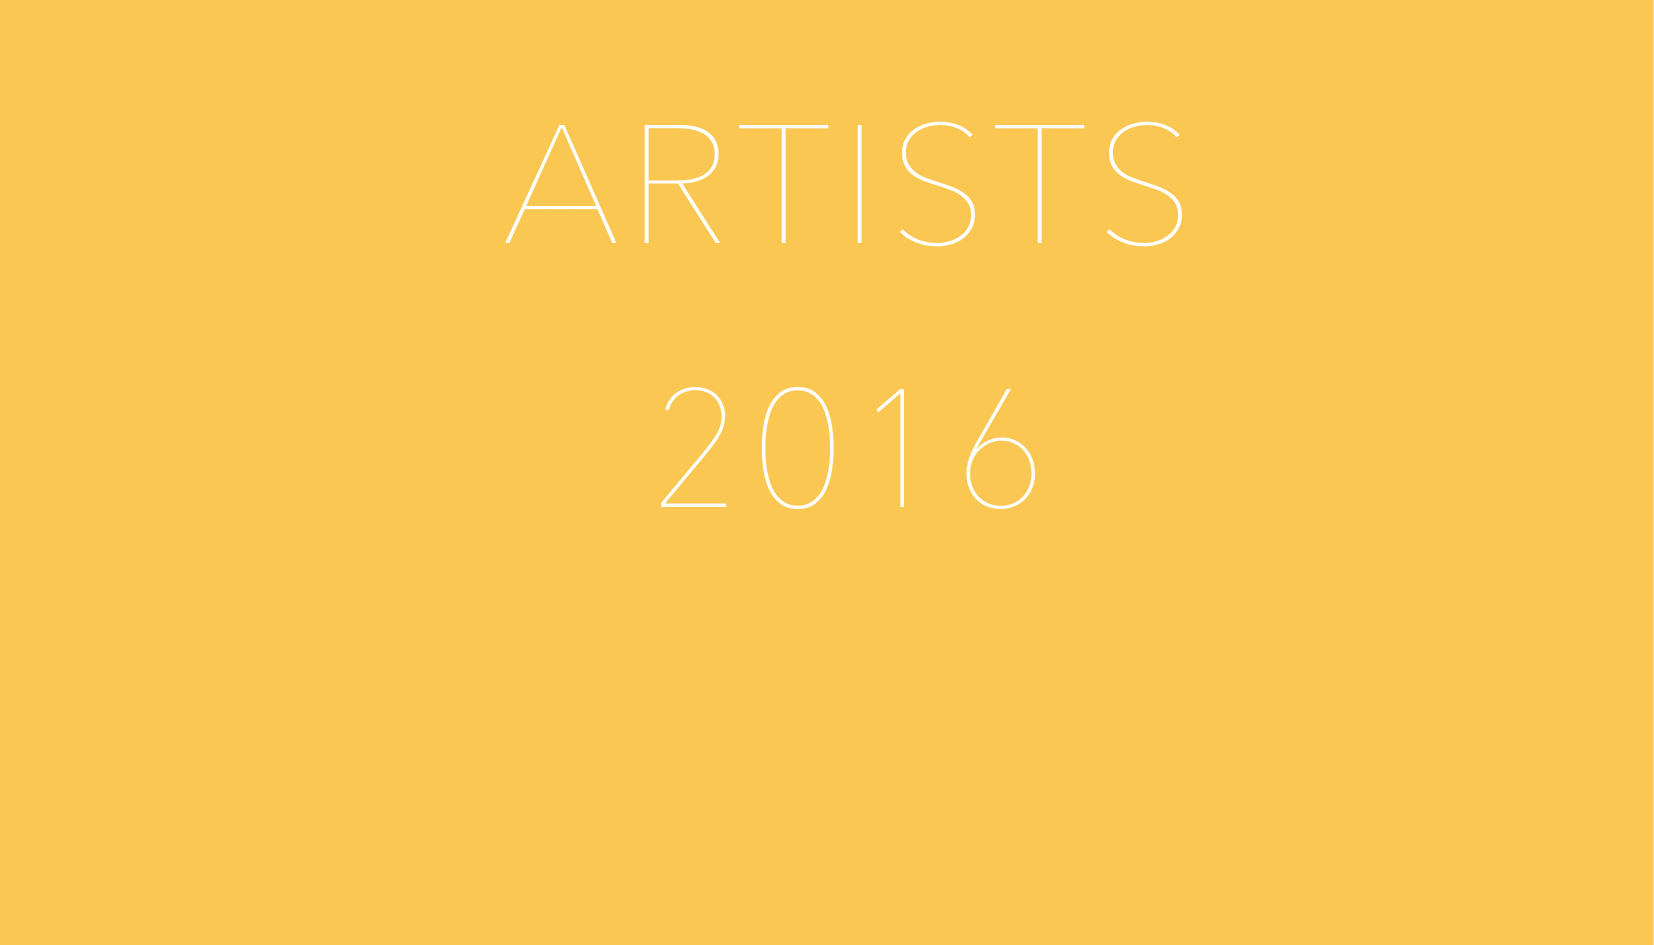 Artists catalogue 2016 ochre-01.png